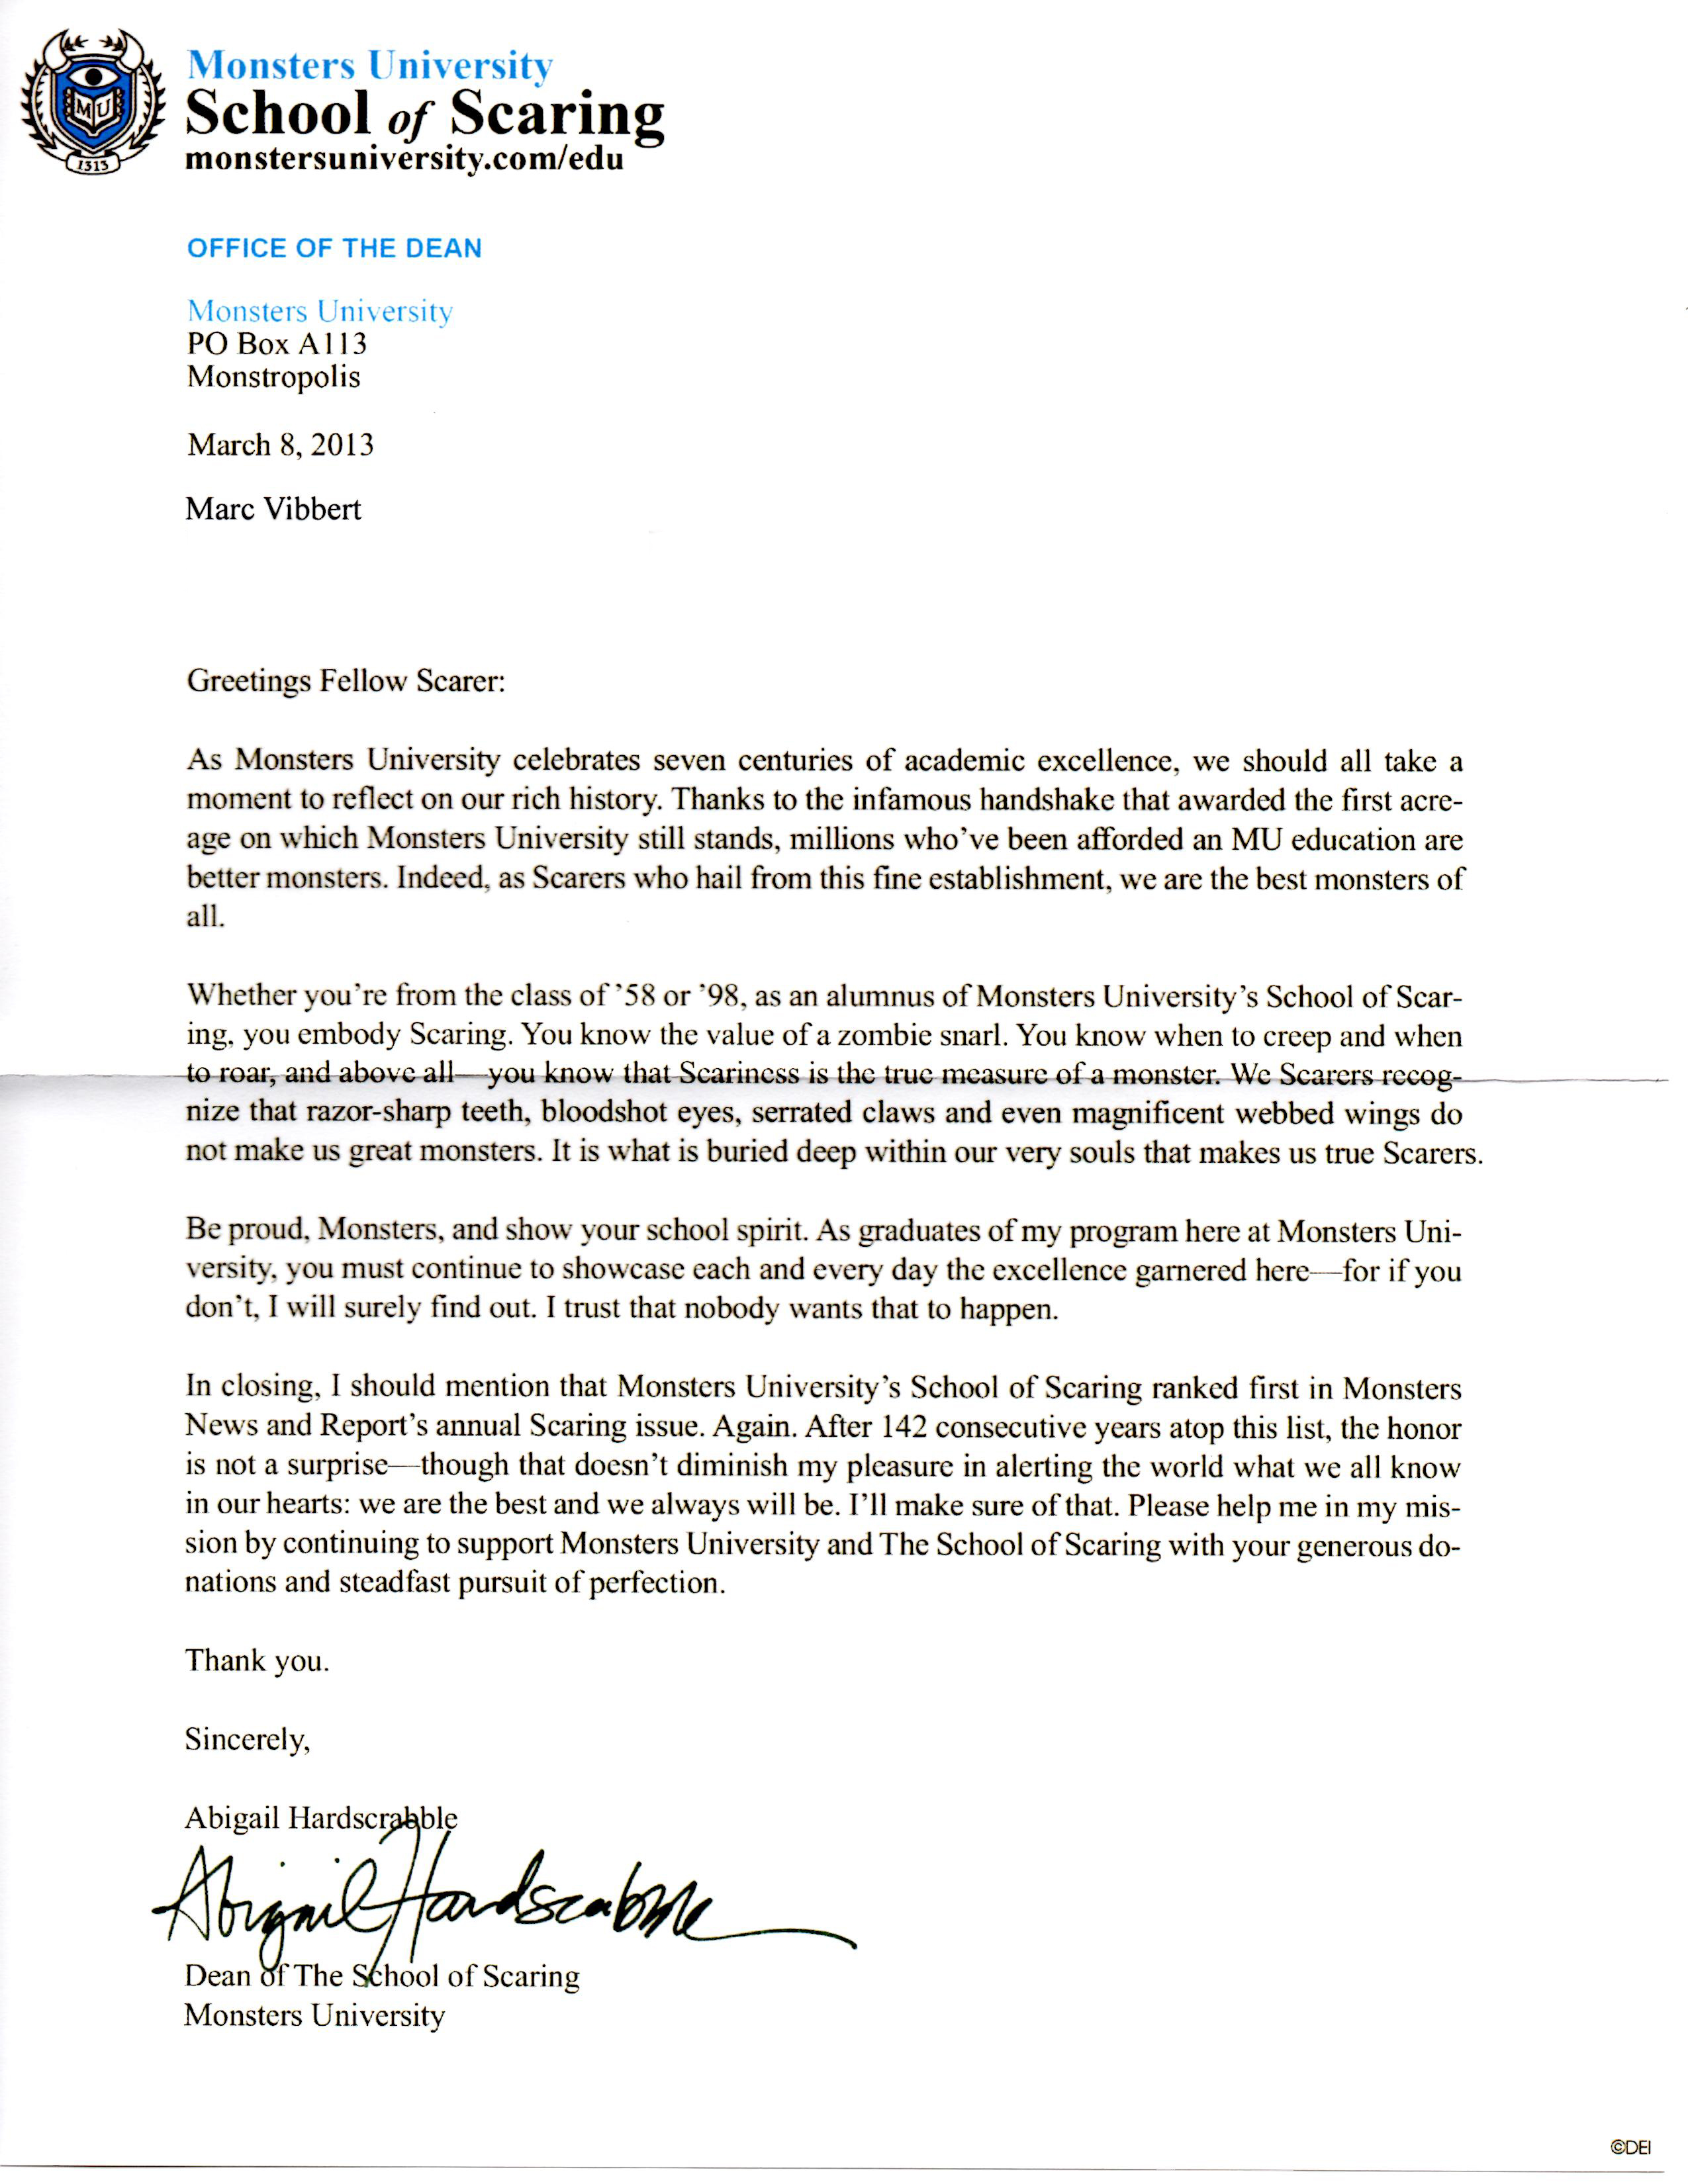 Resignation Letter Sample Format Viral Marketing Mail From Monsters University School Of